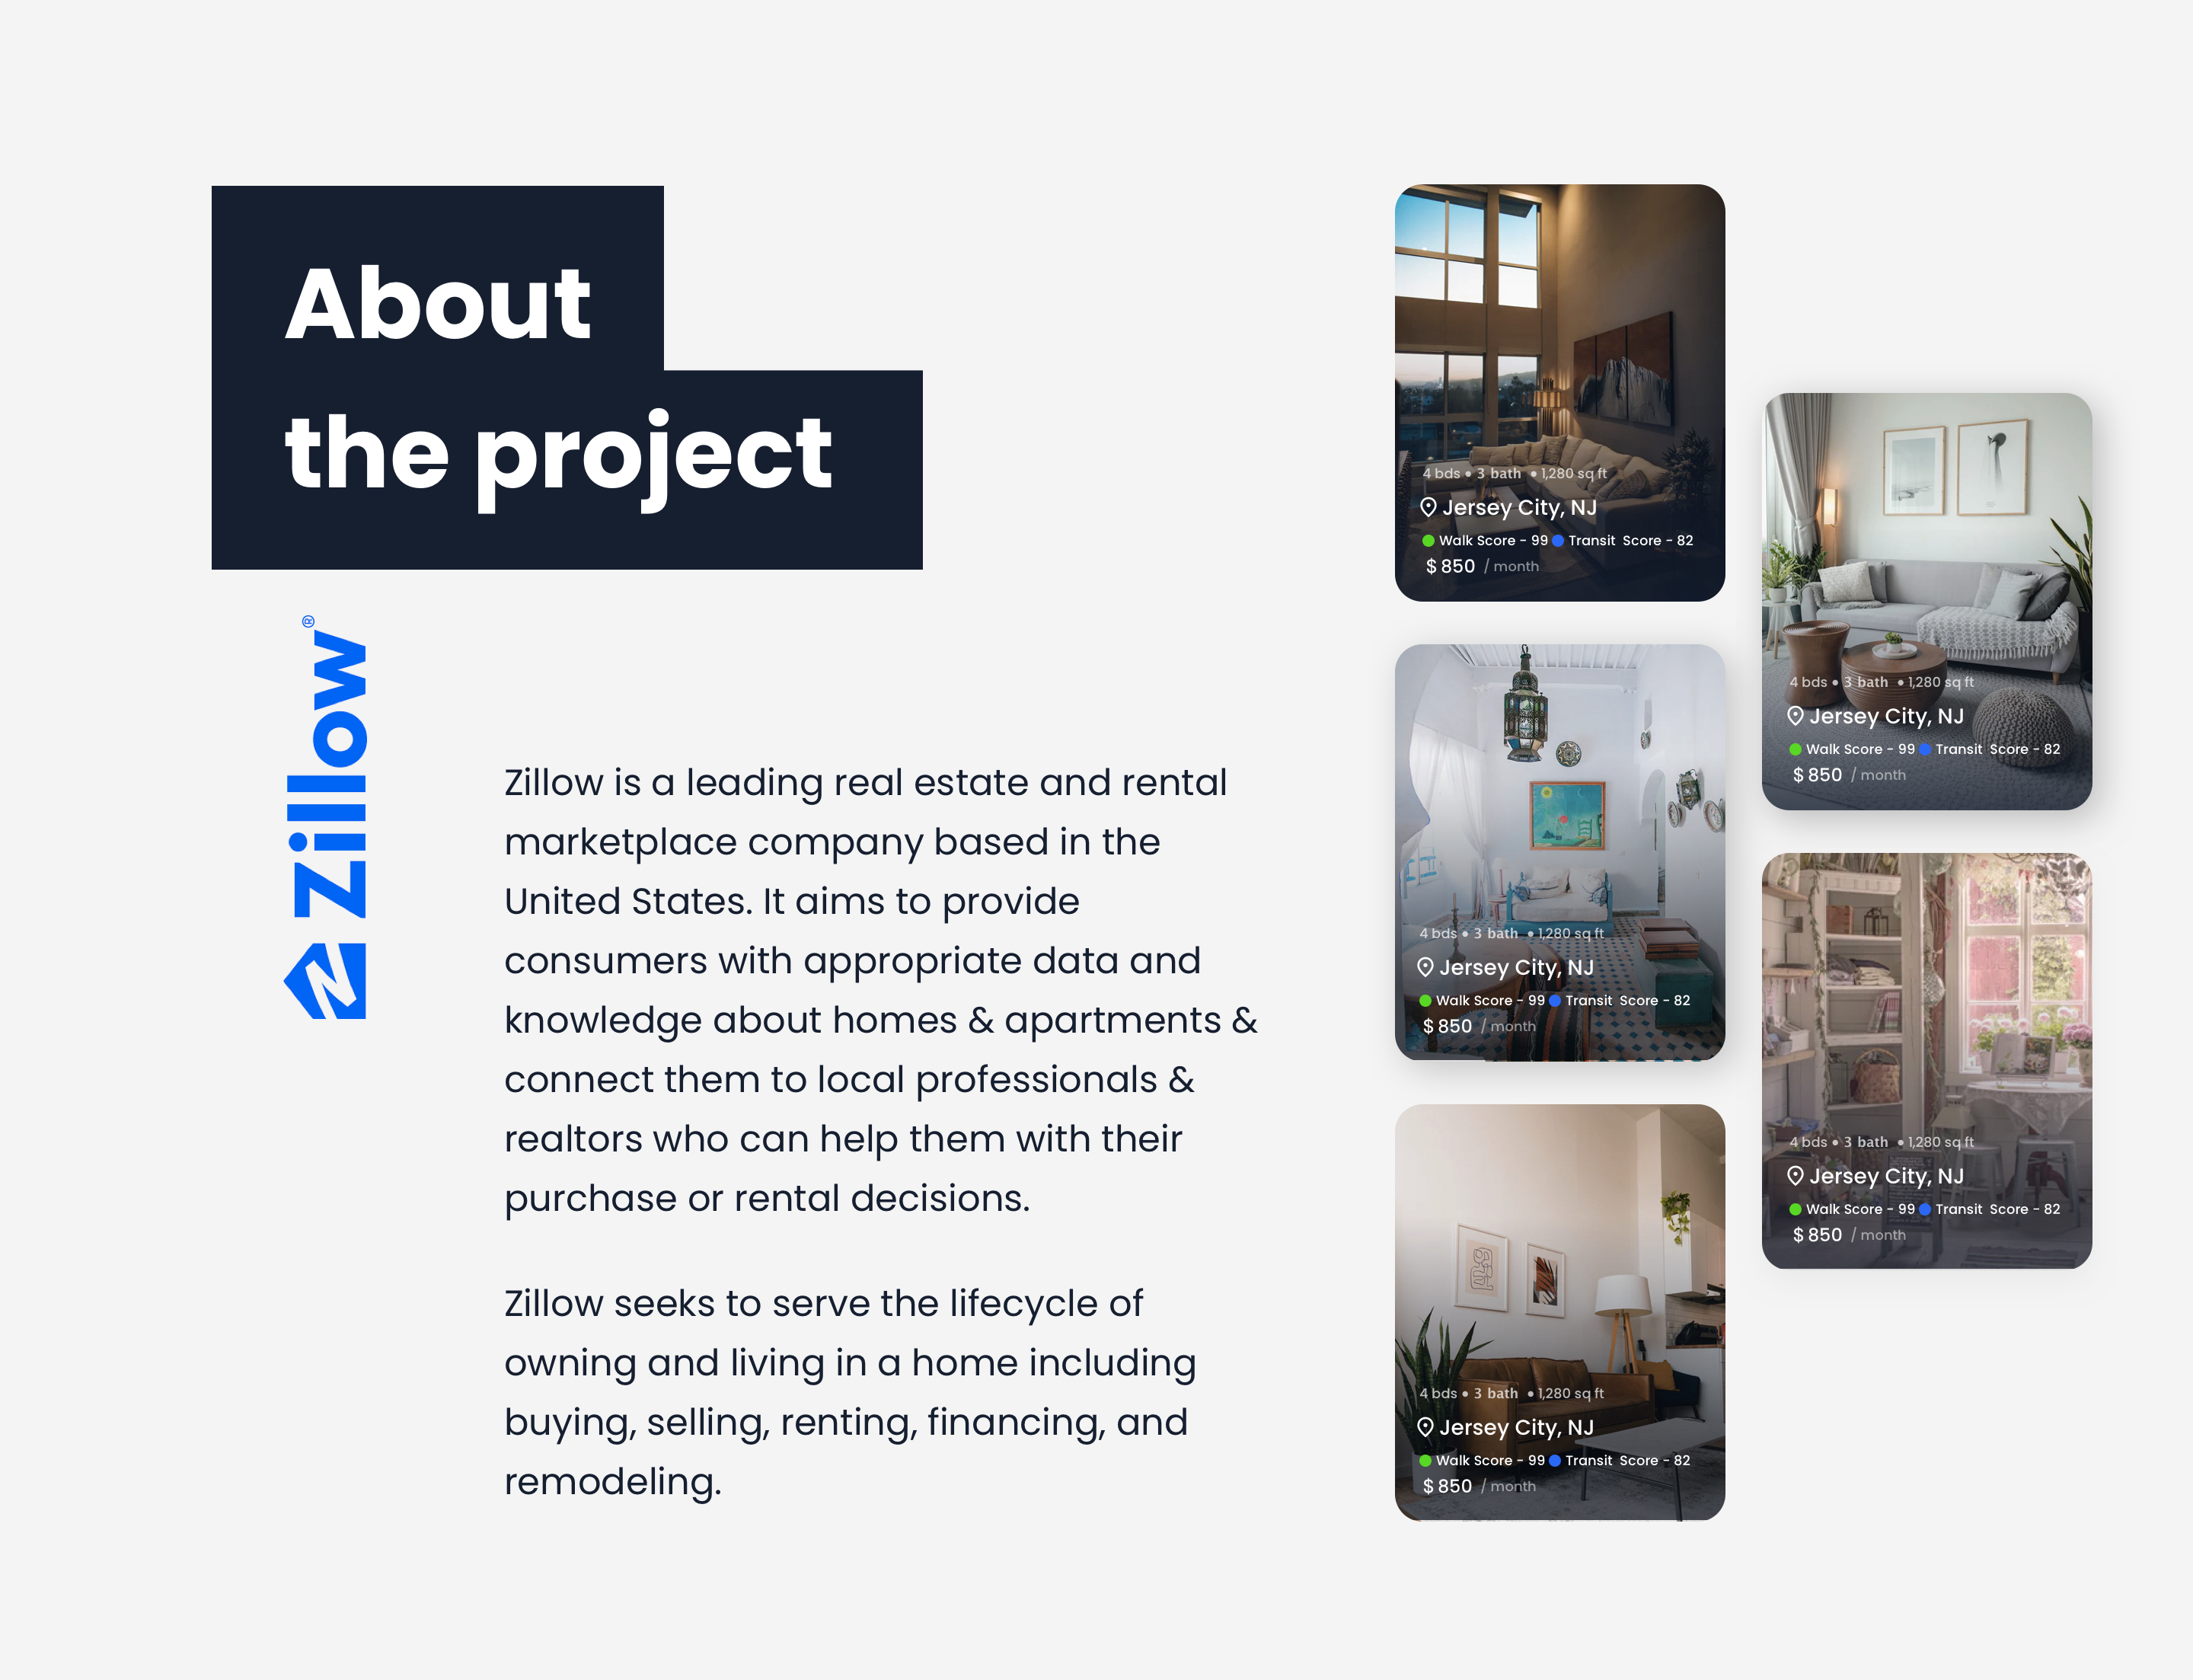 About the project